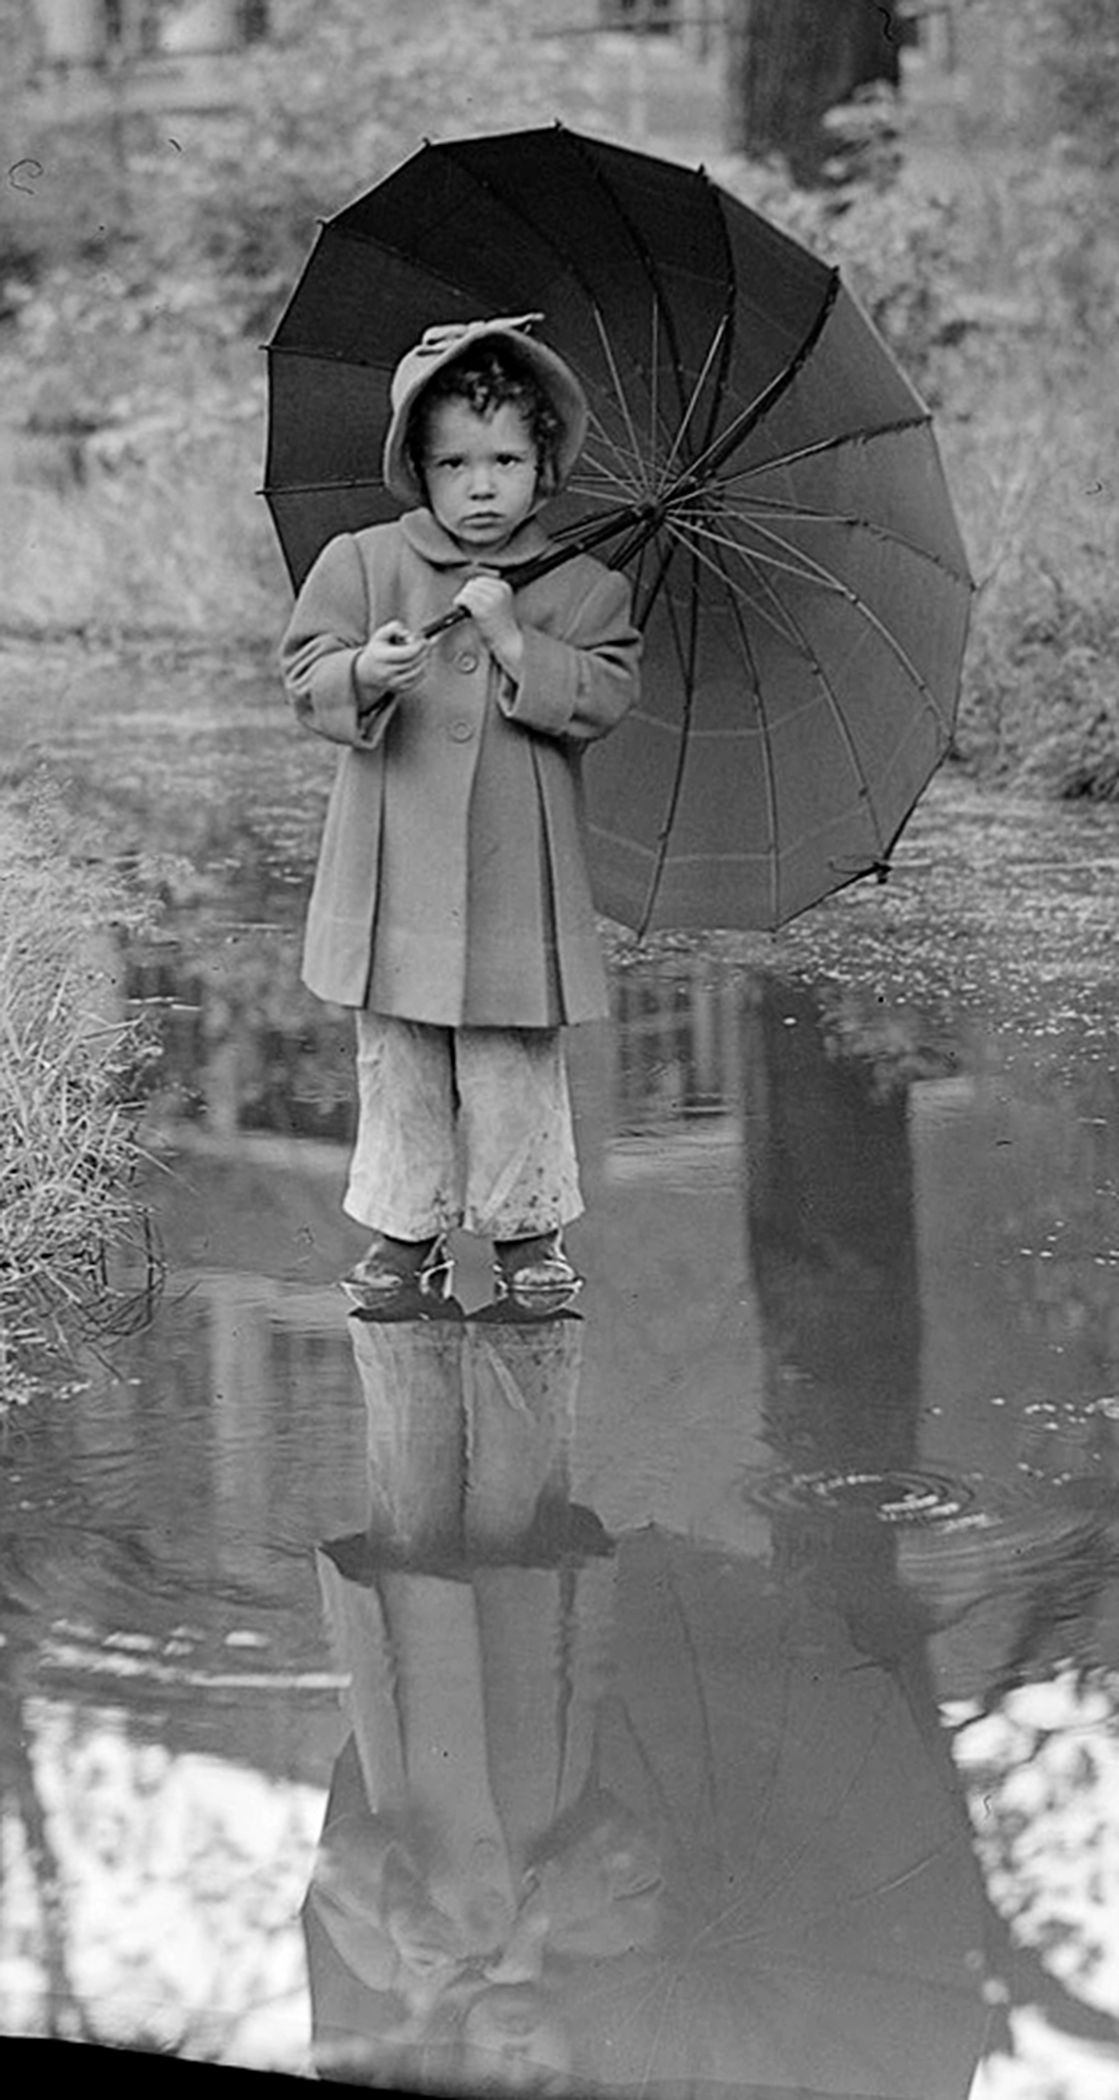 Child Holding an Umbrella (detail).  Photograph by Leslie Jones 1934-56.  Courtesy of the Boston Public Library bpl.org